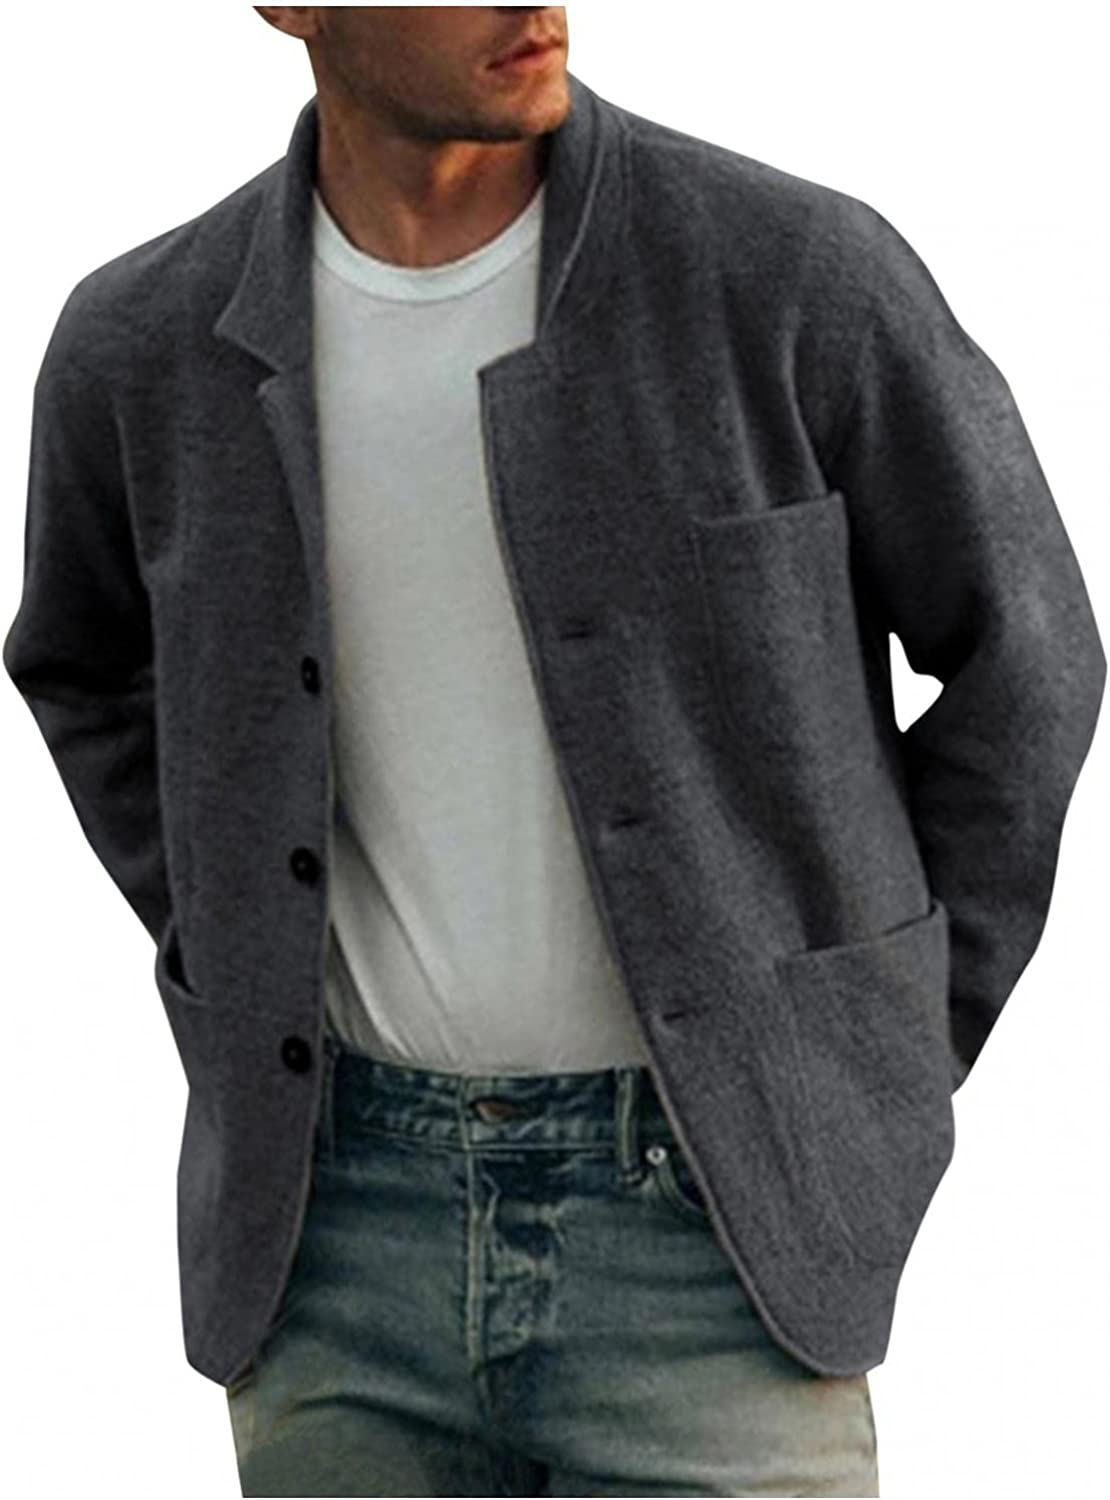 XUNFUN Men's Short Trench Coat Casual Wool Blend Notched Collar Single Breasted Solid Winter Warm Pea Coats Jackets